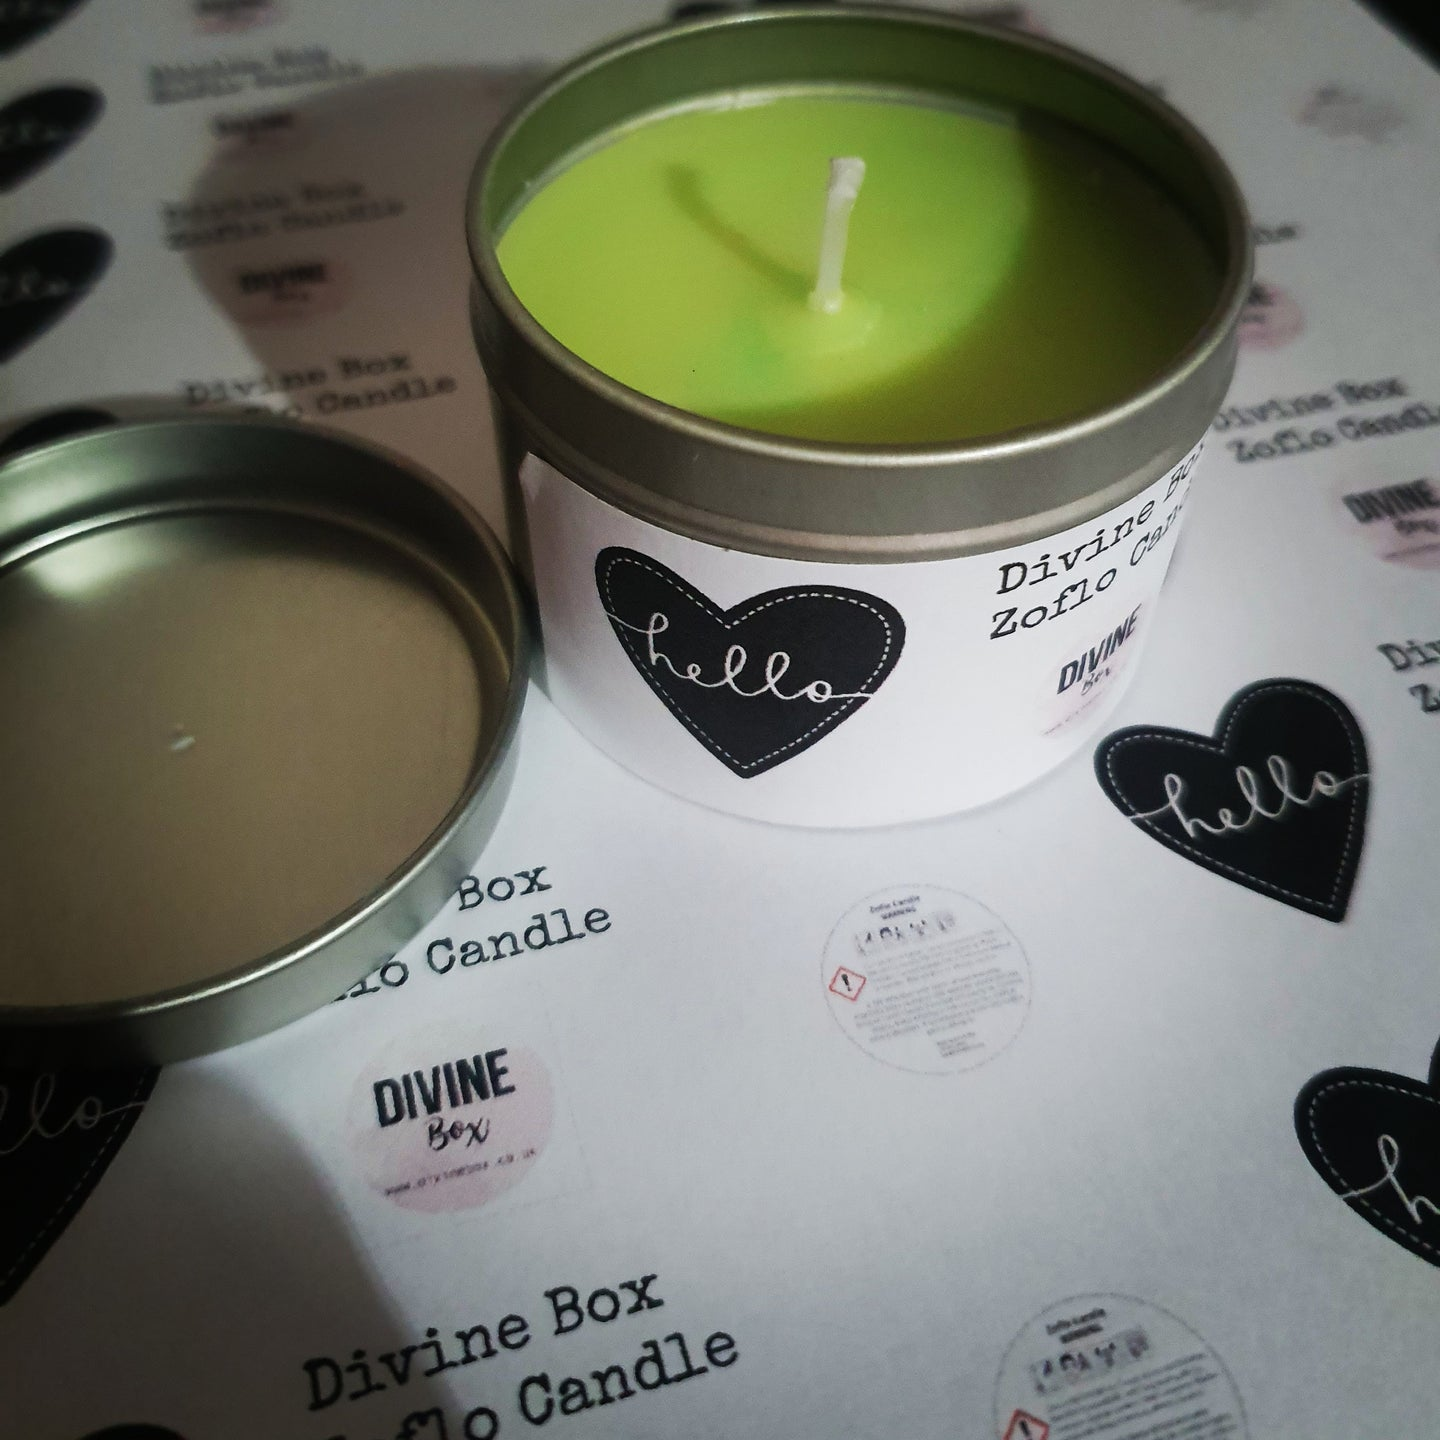 Divine Box Soy Wax Candle